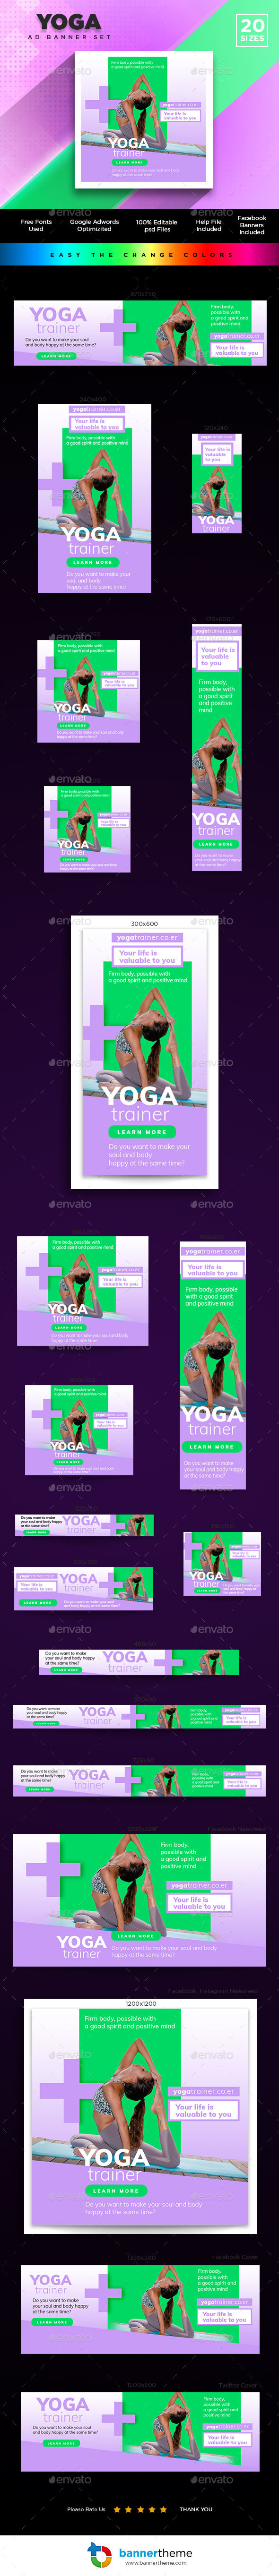 Yoga Banner - Banners & Ads Web Elements